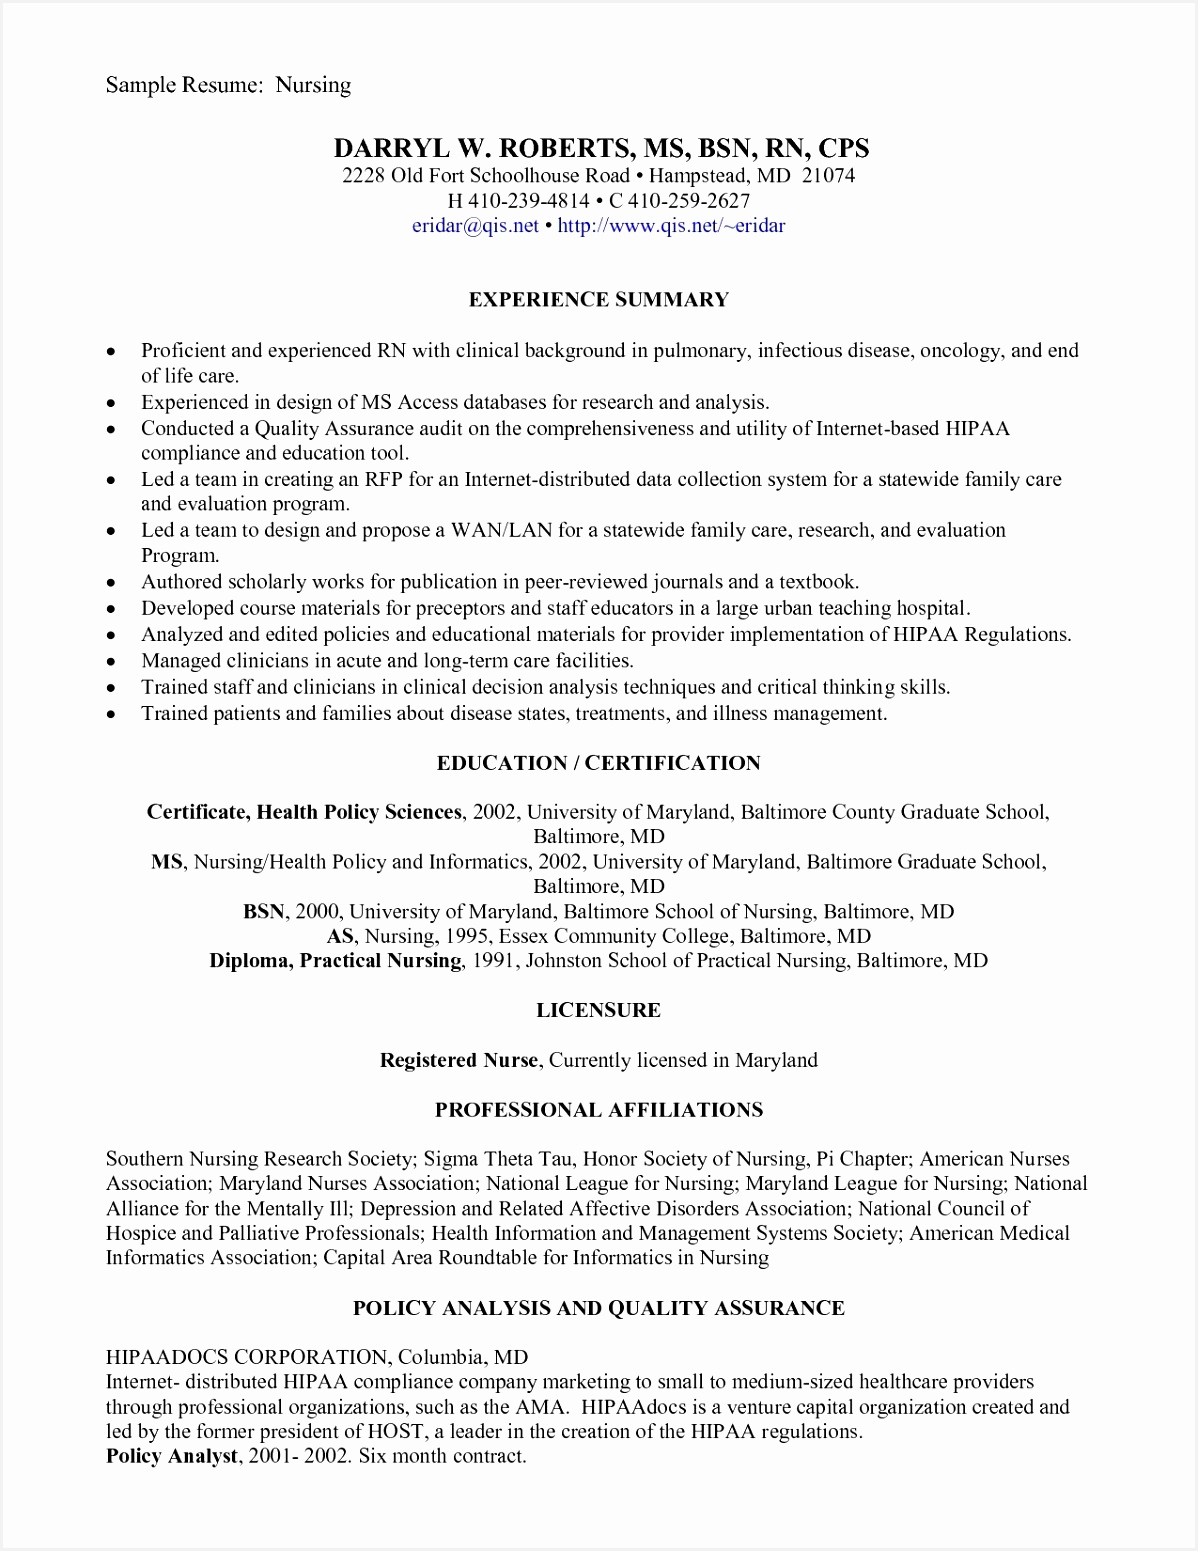 Resume Of Construction Worker Fuawk New How to Write A Nursing Resume New Construction Worker Resume Sample Of 4 Resume Of Construction Worker